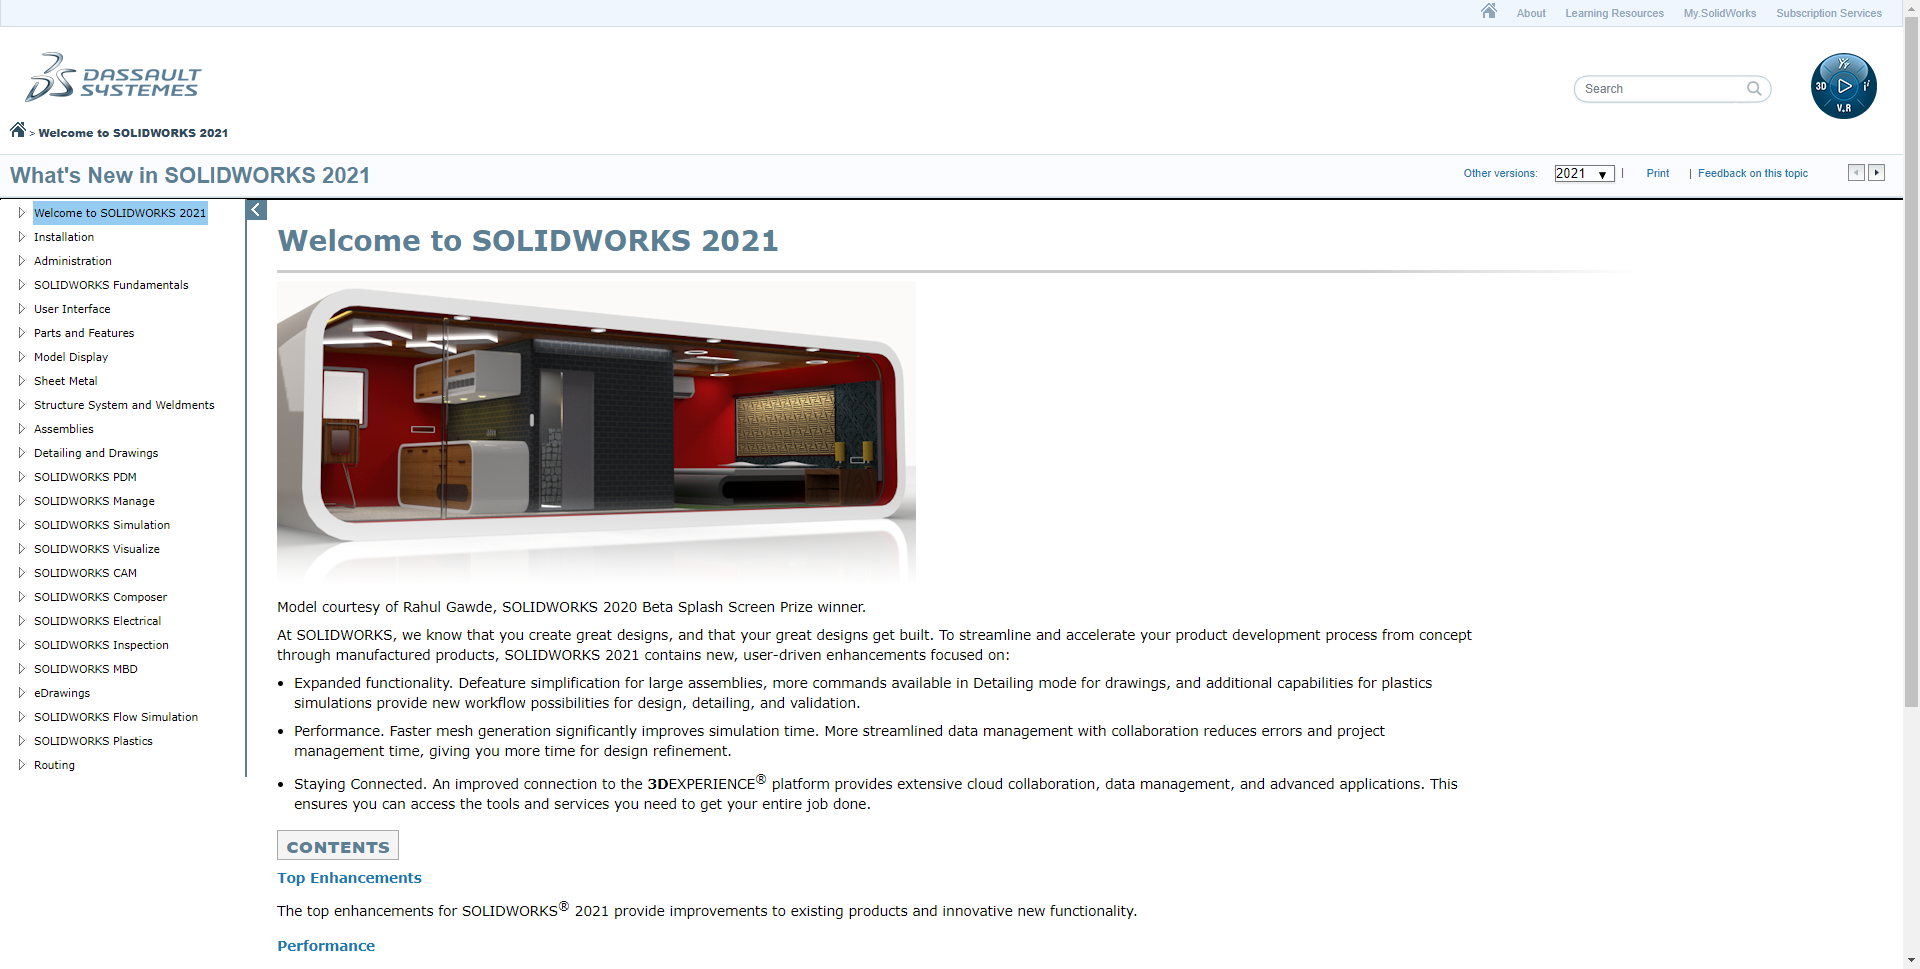 How Do I Find My SOLIDWORKS Version, Service Pack and Serial Number?